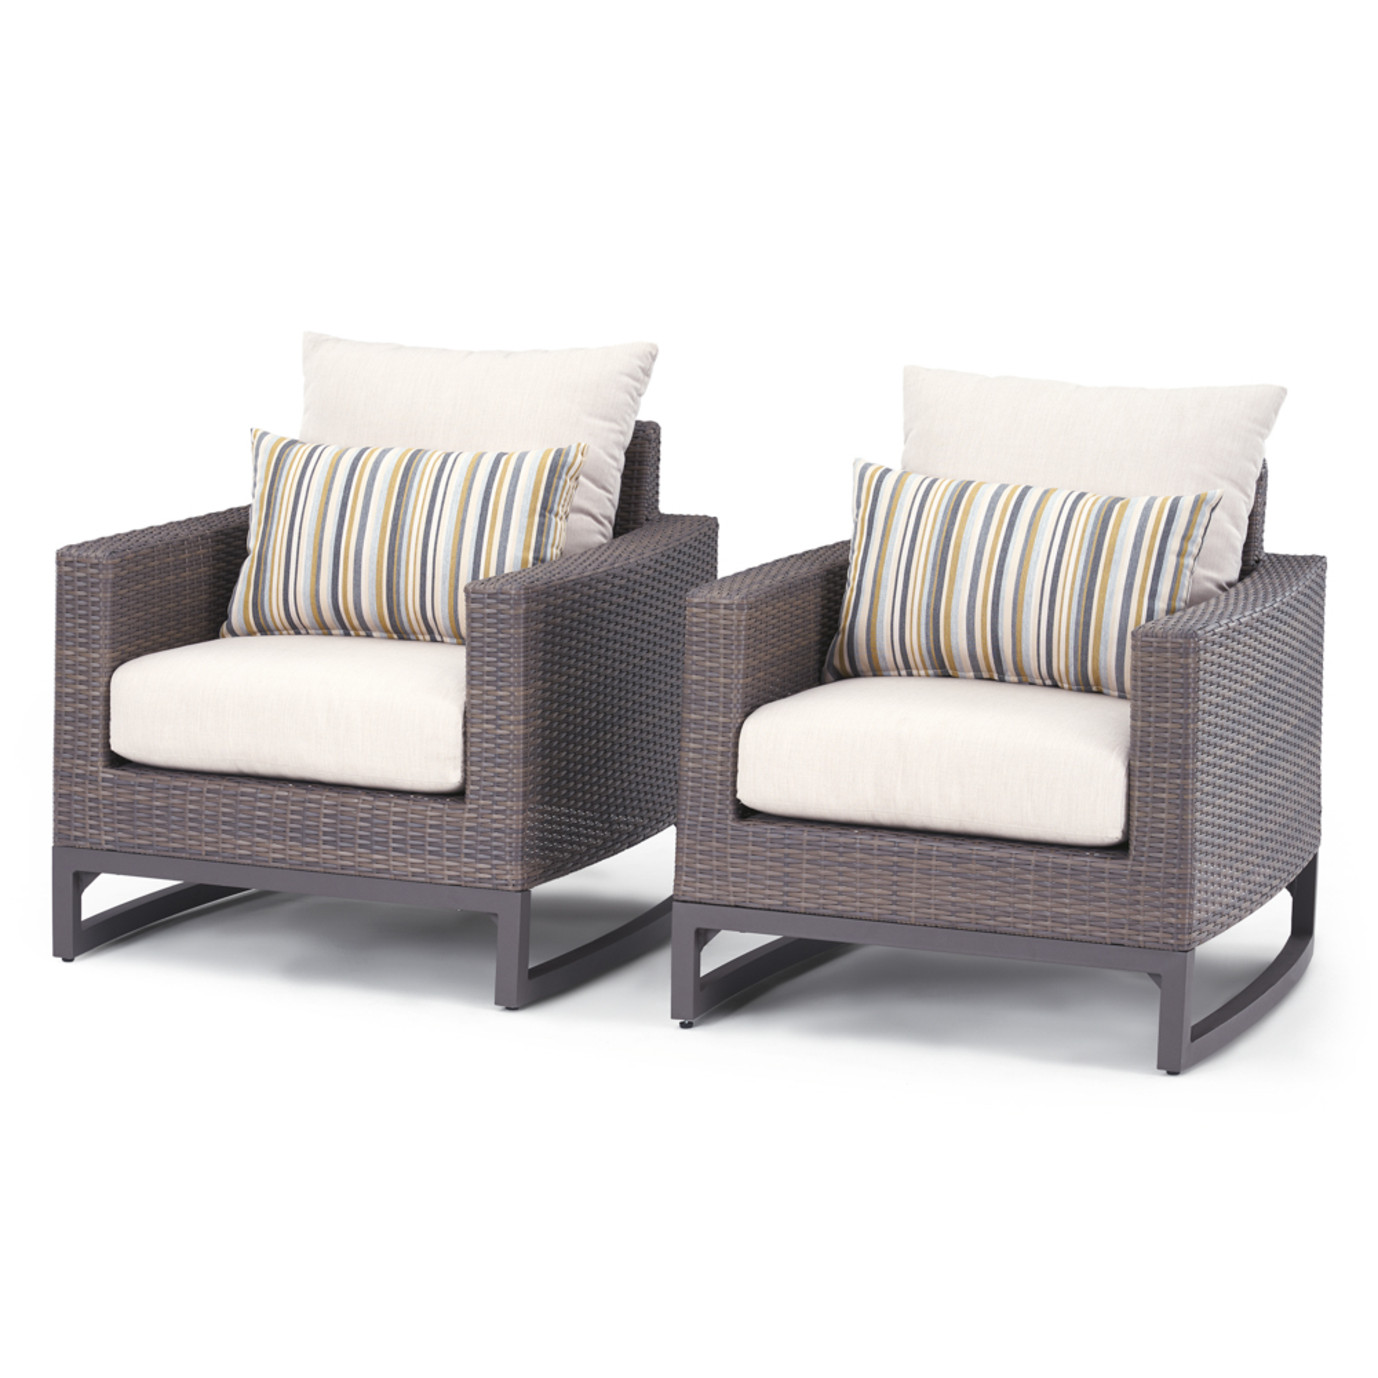 Milea 4 Piece Motion Seating Set - Natural Beige